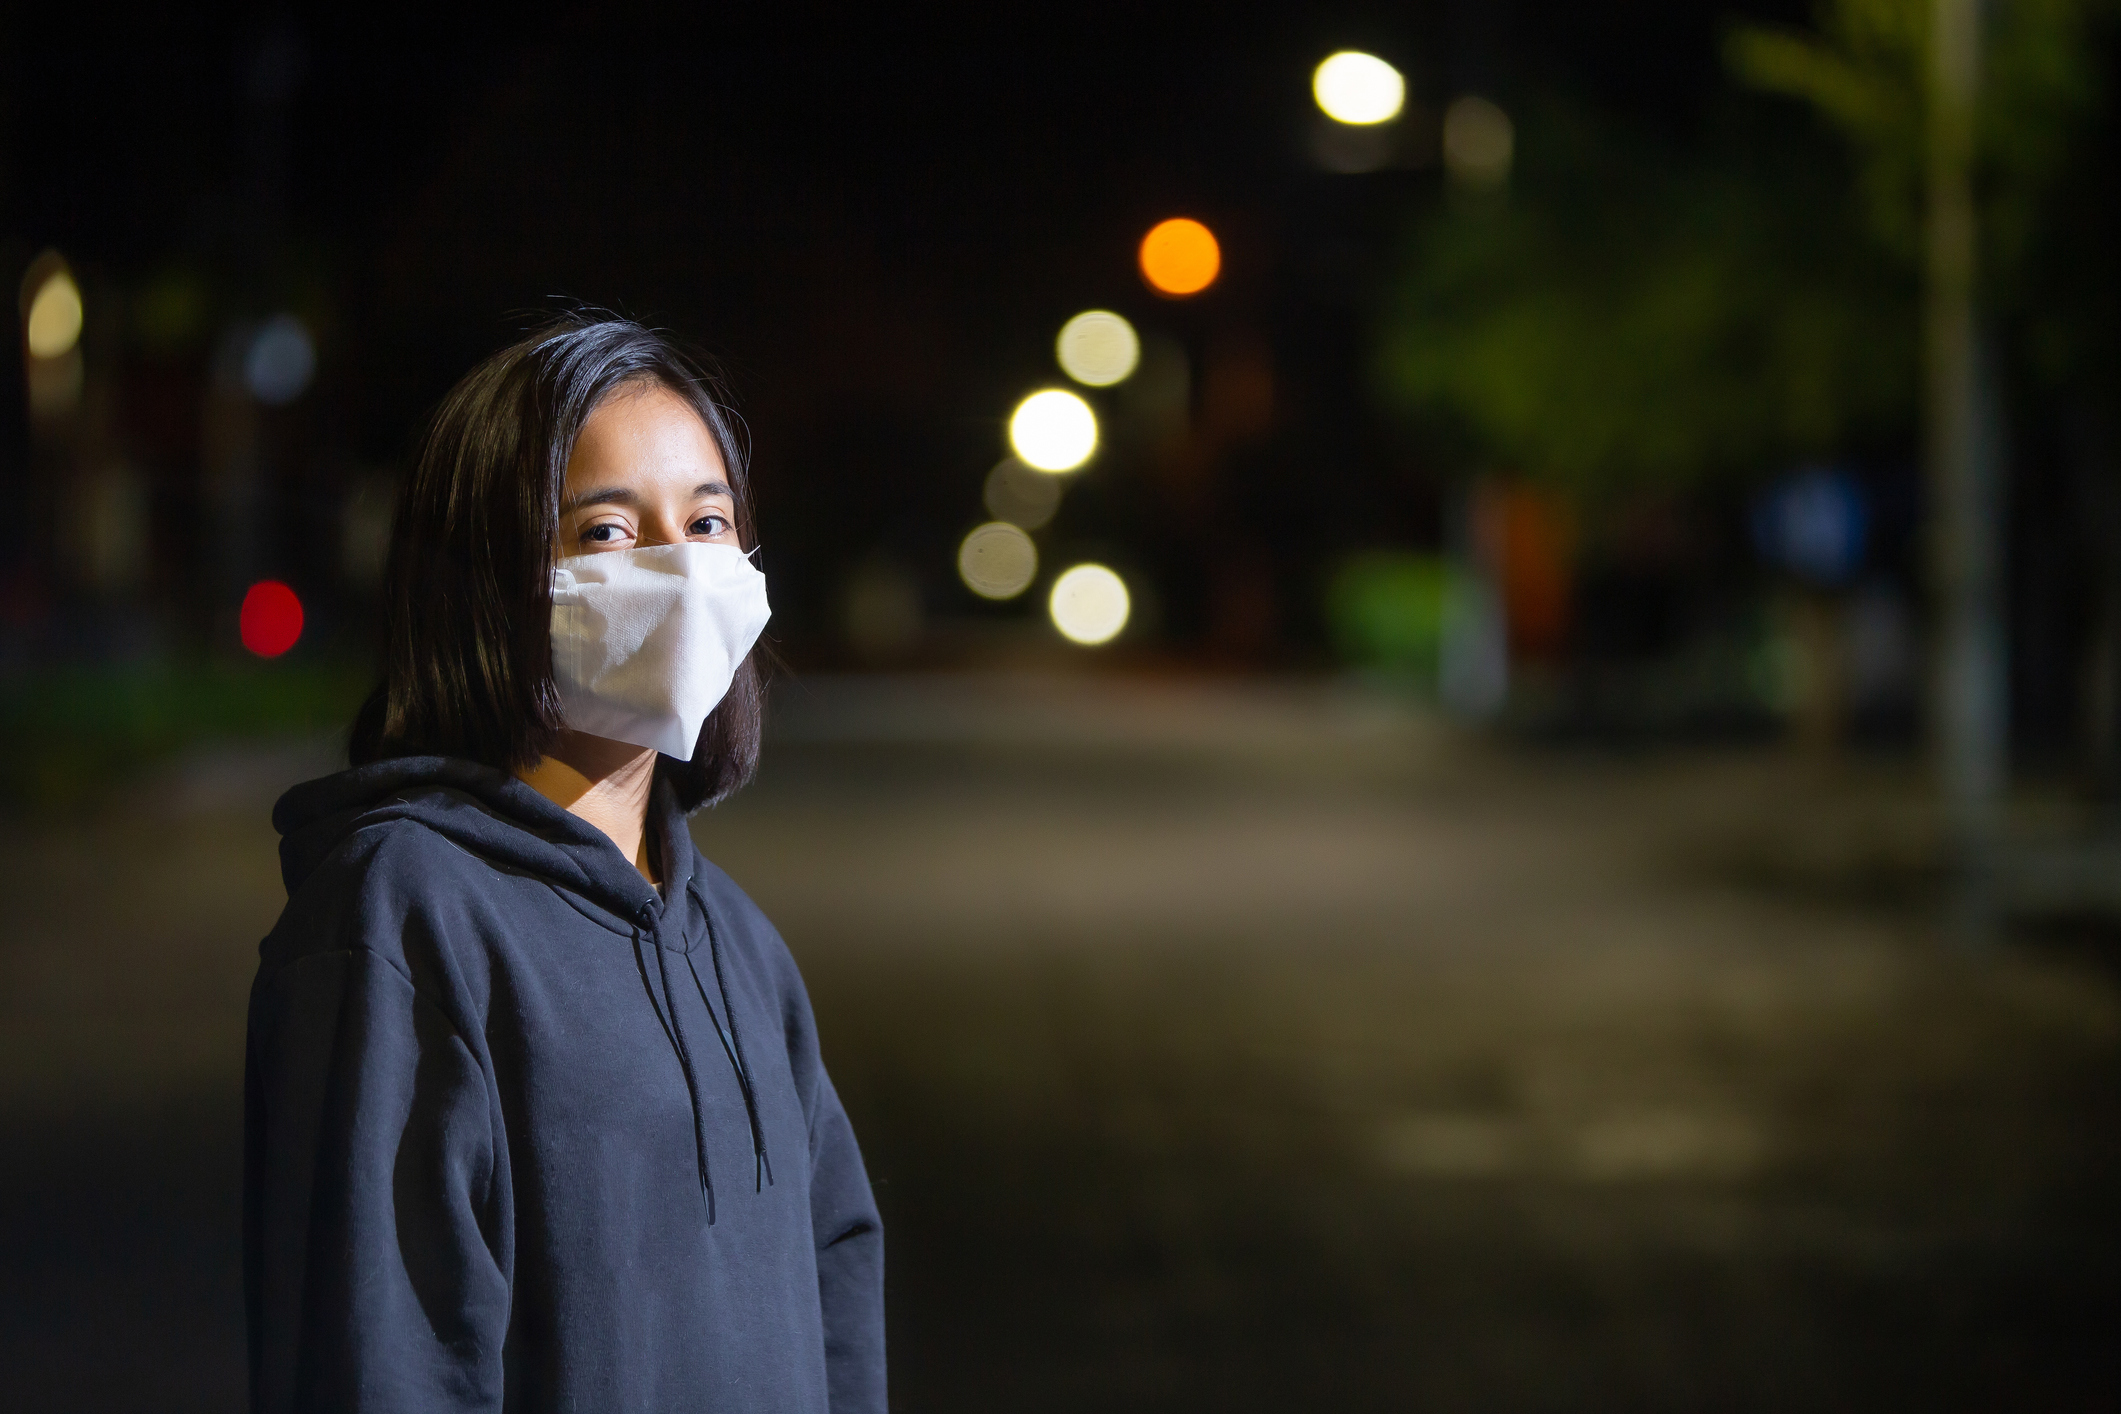 Teenage woman wearing a face mask during the COVID-19 pandemic. Image credit: iStock